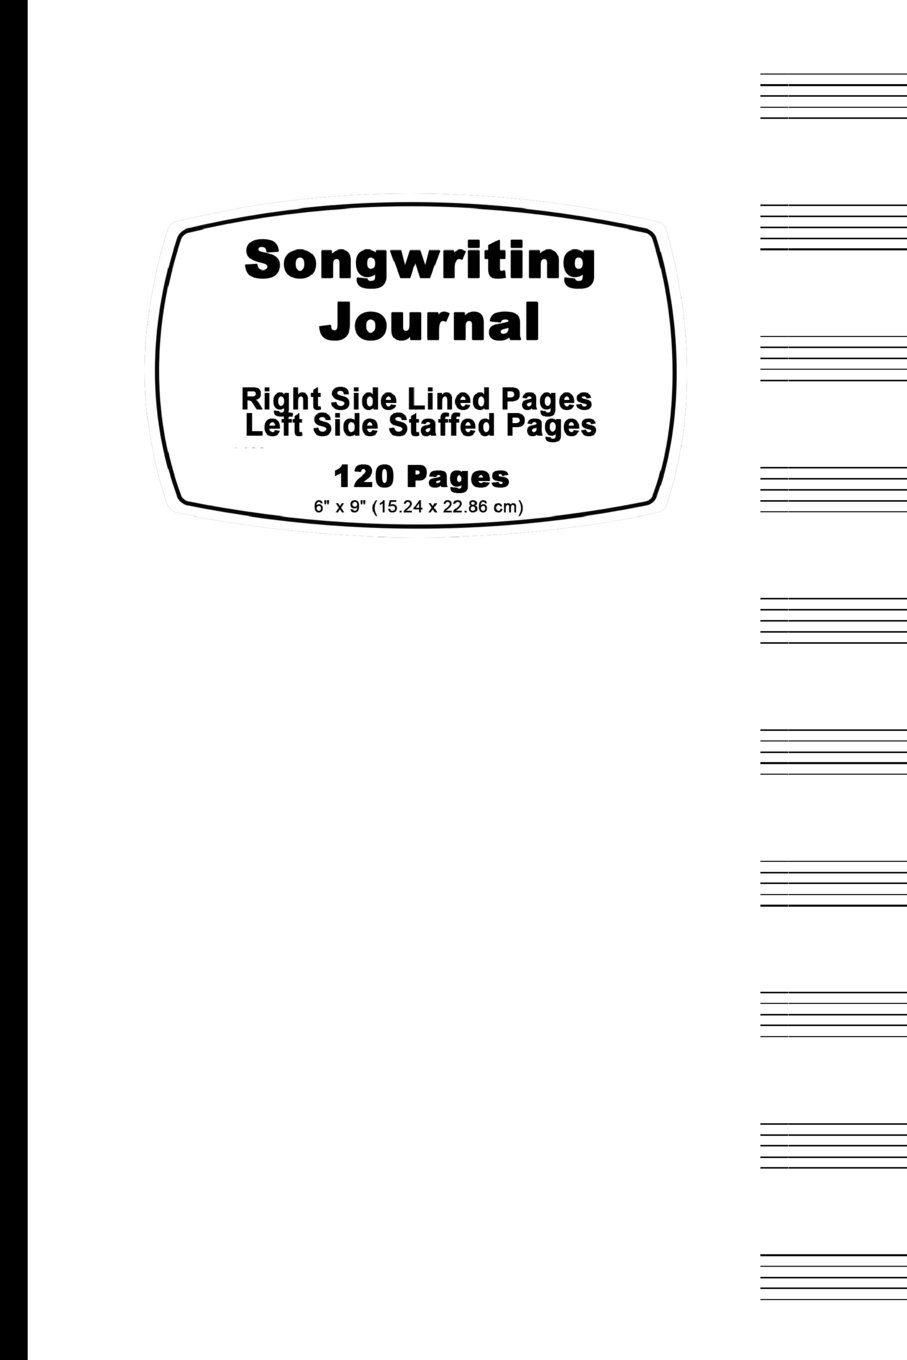 Songwriting Journal: Classic White Cover,Lined Ruled Paper And Staff, Manuscript Paper For music Notes, Lyrics or Poetry. For Musicians, Students, ... cm), Tight binding, soft durable book cover